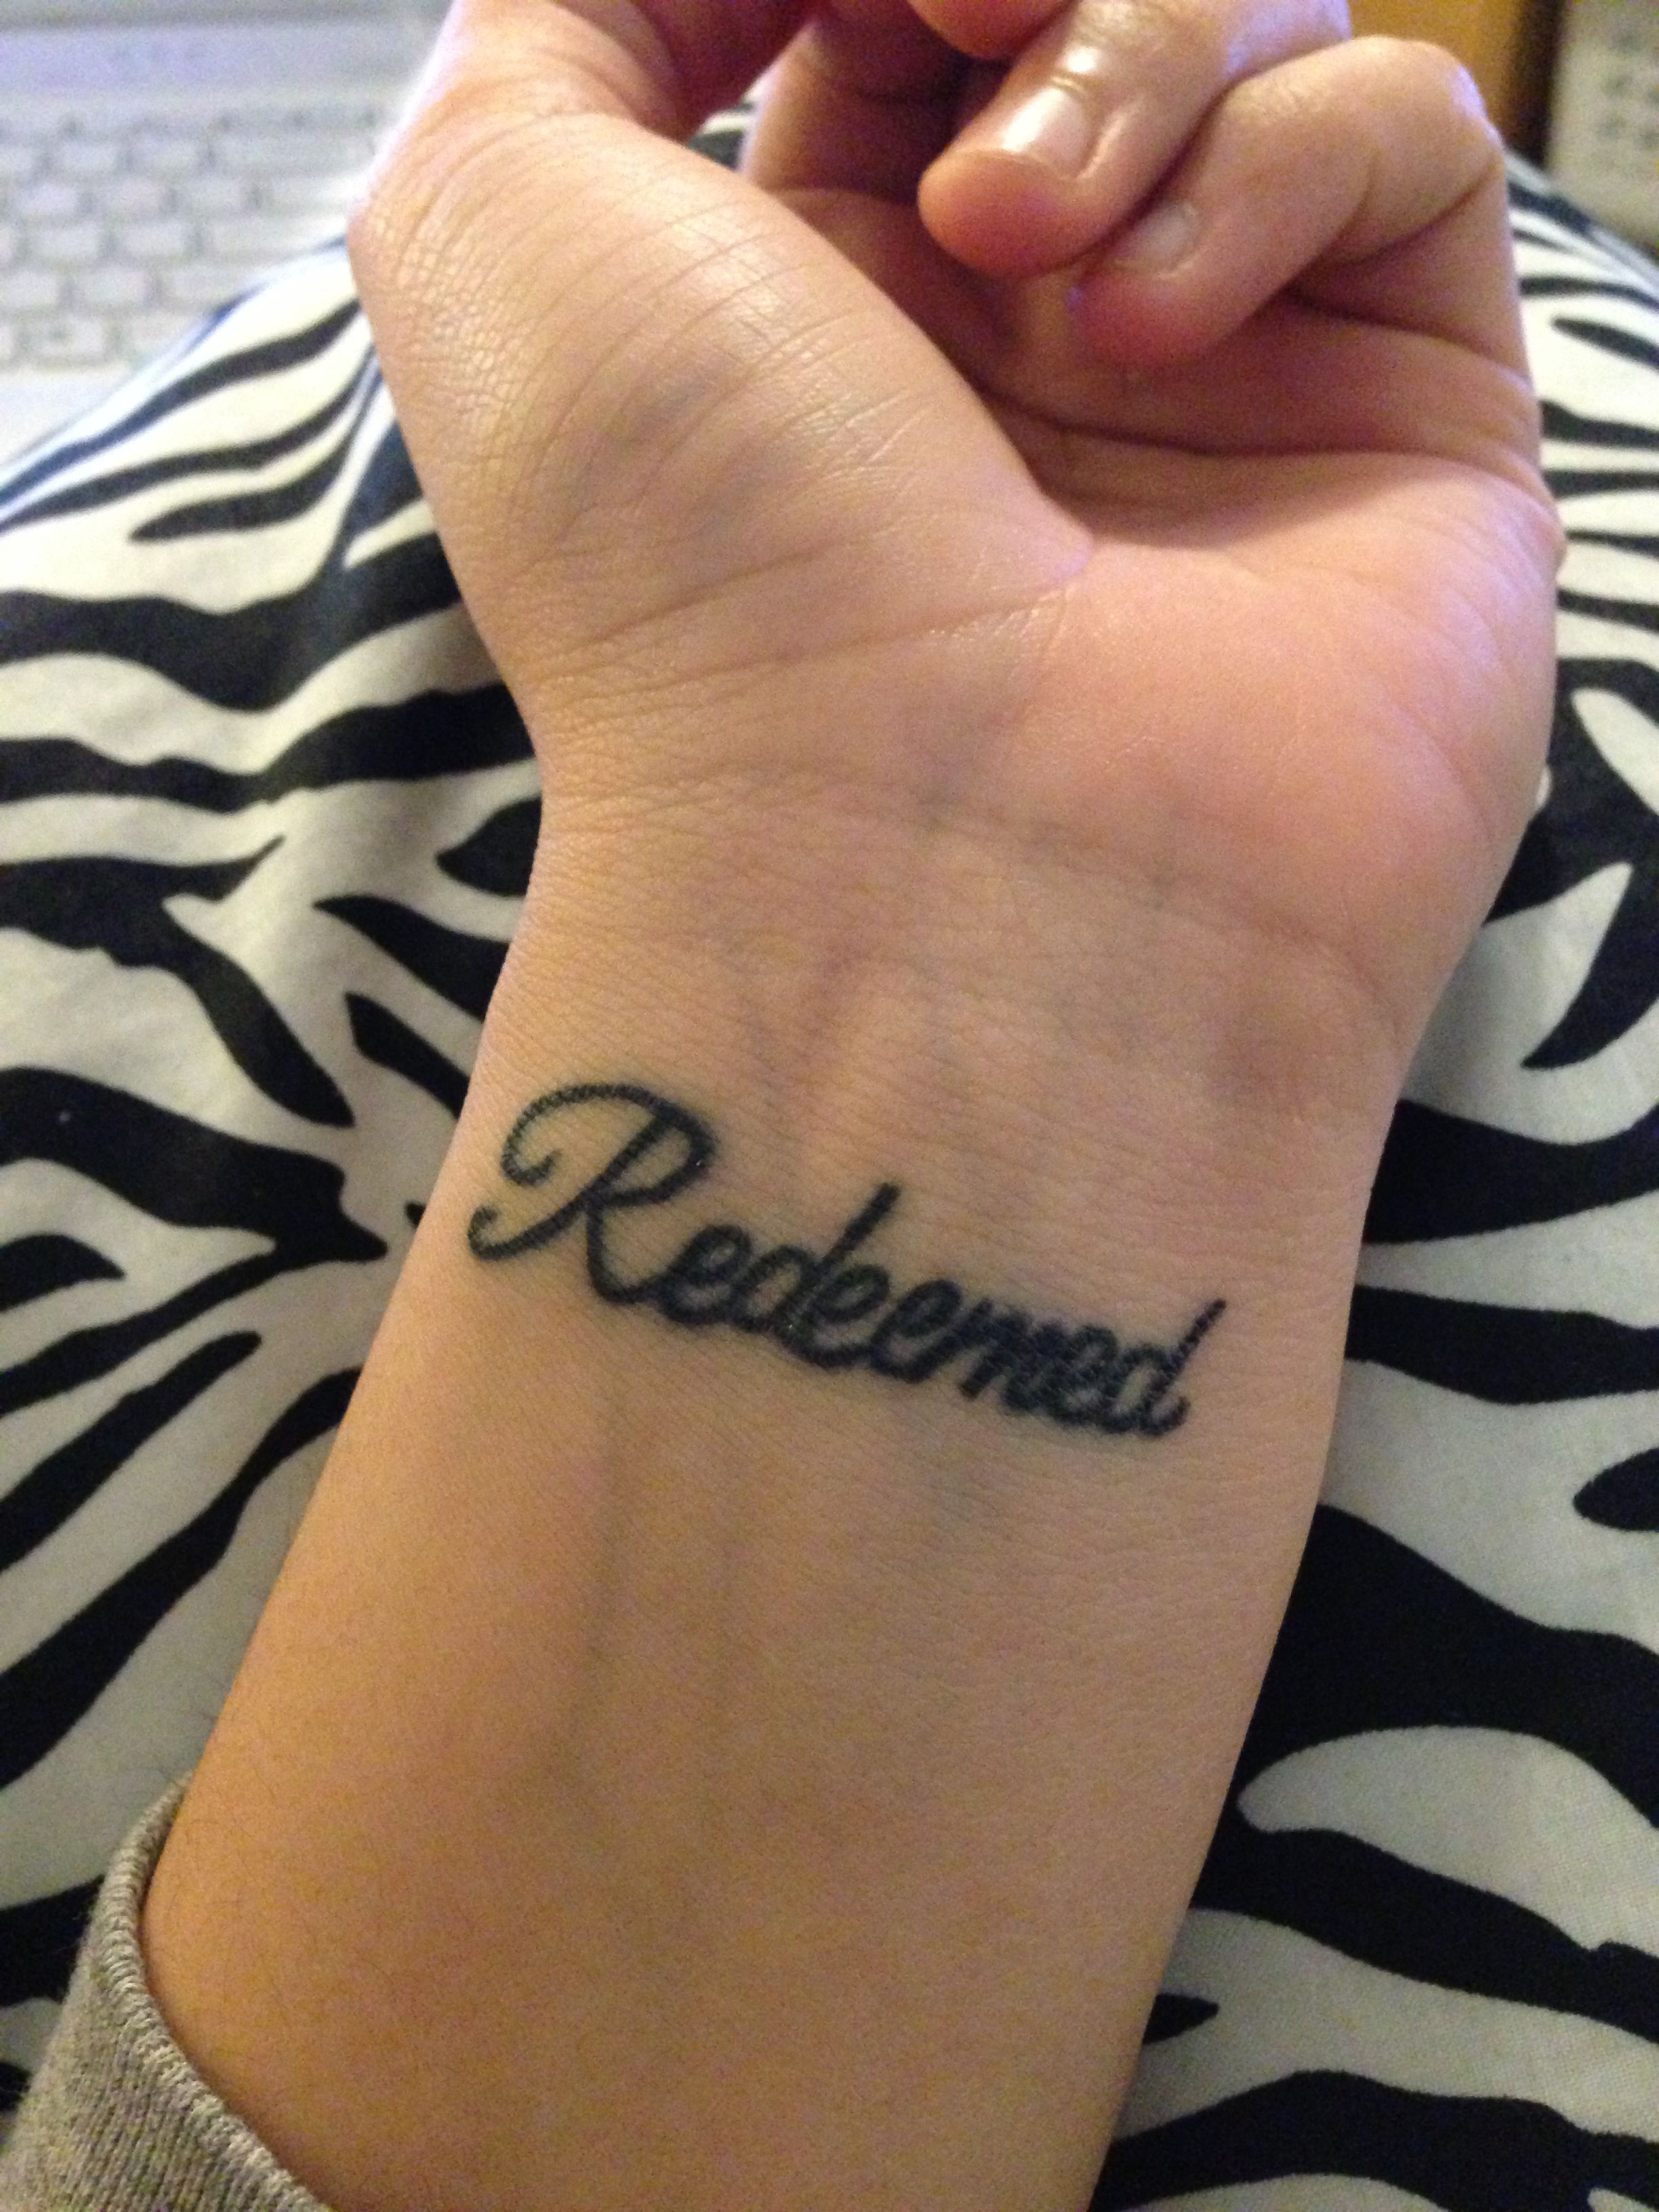 i am redeemed in my own handwriting on my fore arm tats pinterest tattoo piercings and. Black Bedroom Furniture Sets. Home Design Ideas